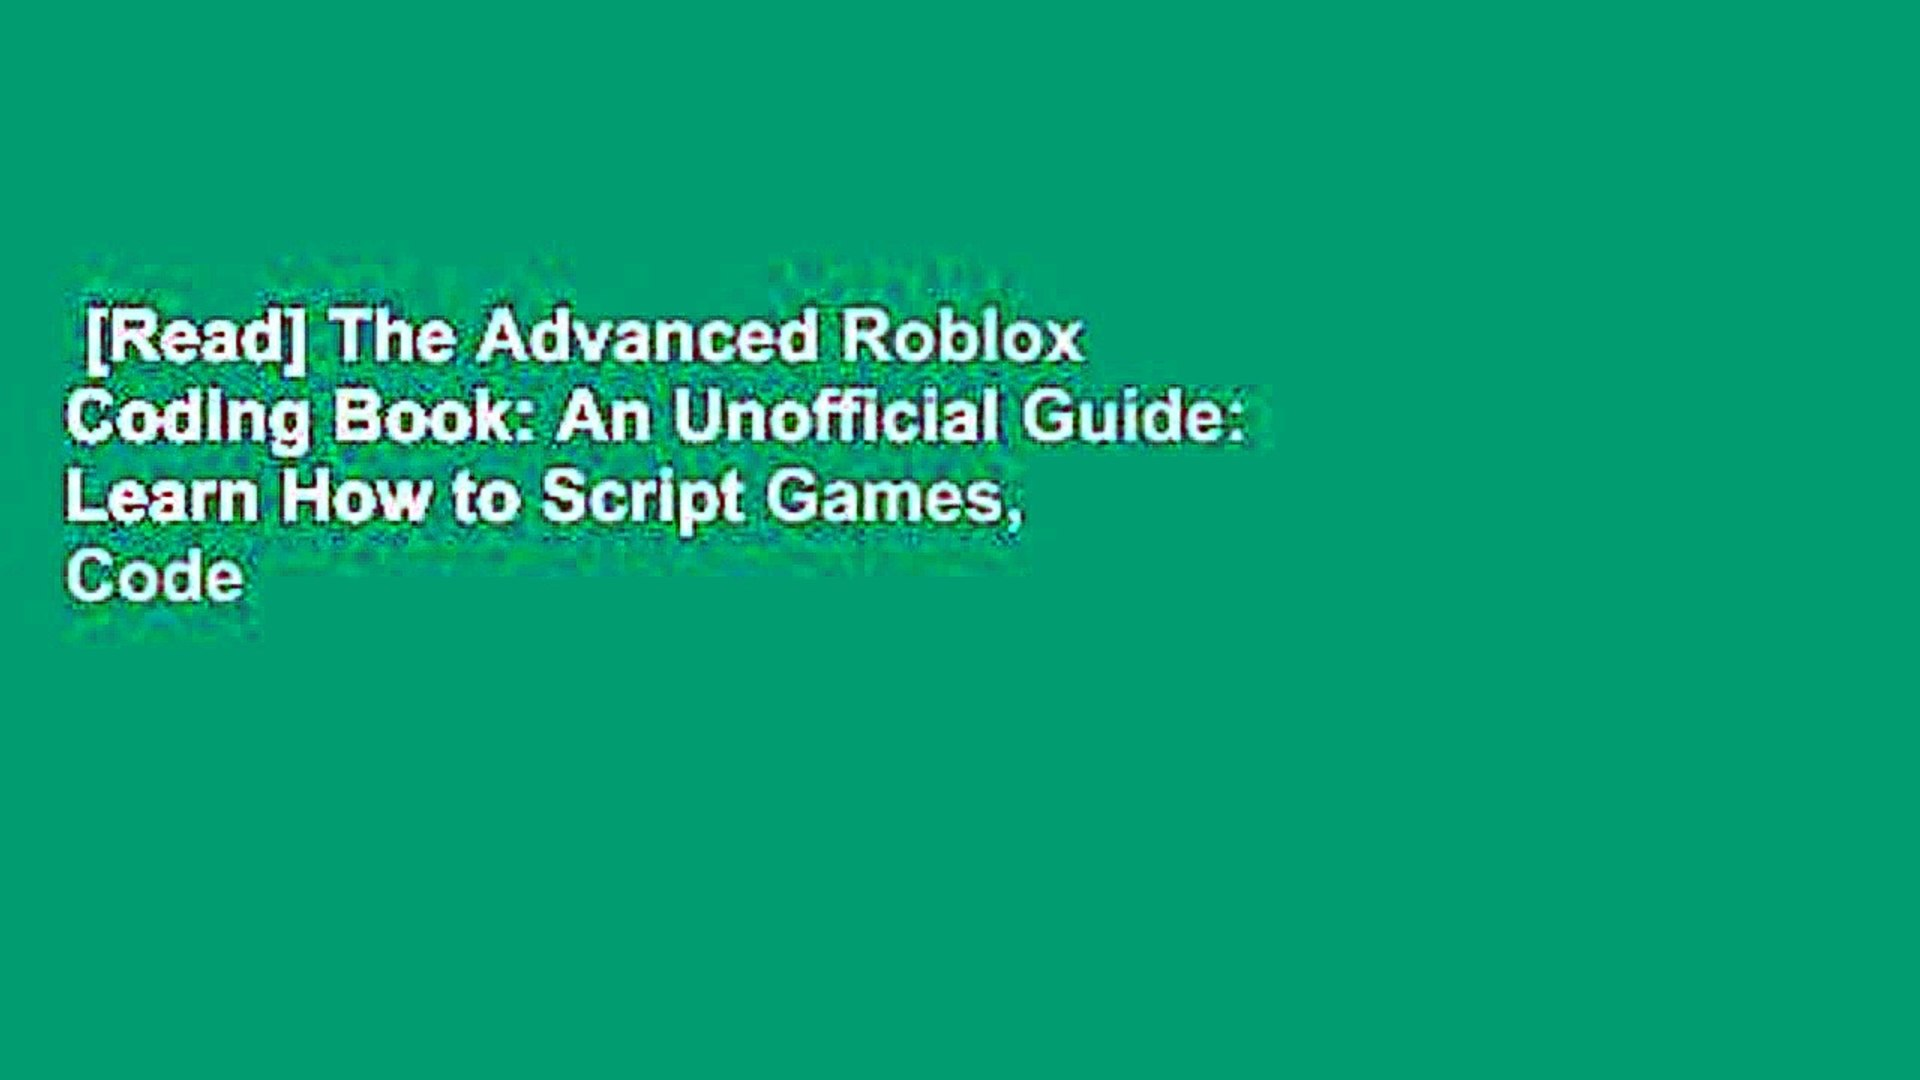 [Read] The Advanced Roblox Coding Book: An Unofficial Guide: Learn How to Script Games, Code